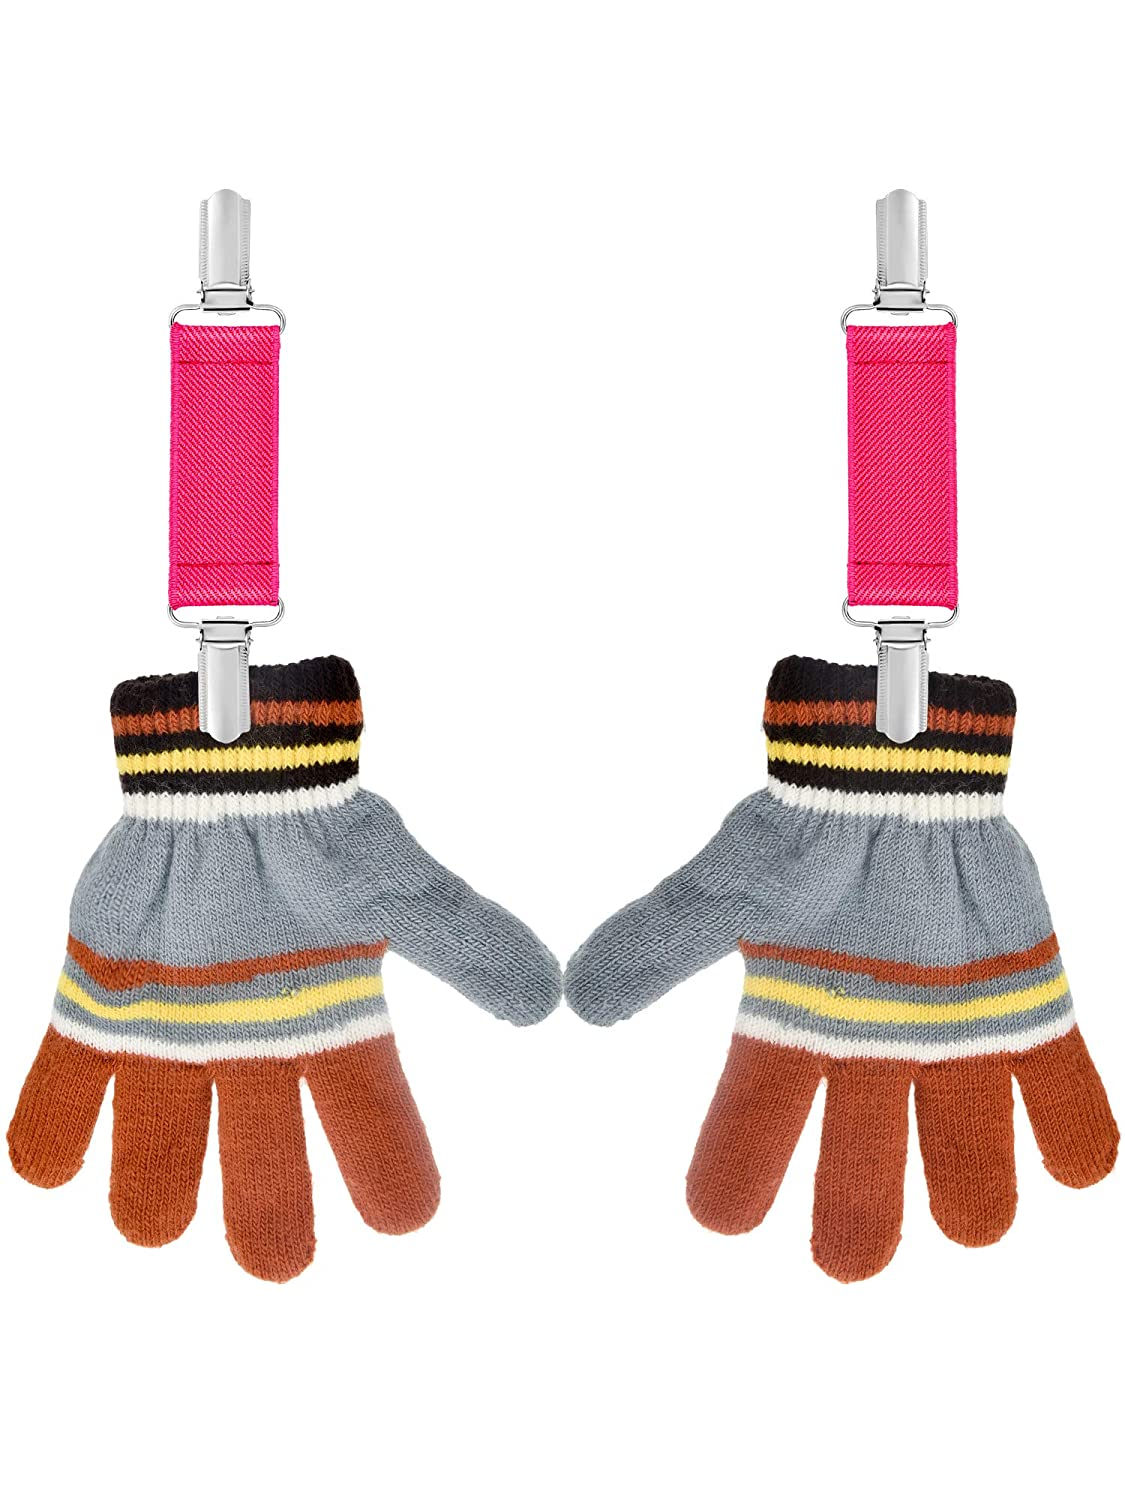 Chengu Elastic Long Mitten Clips and Short Gloves Clips Hat Clips for Baby Toddler Kids Daily Supplies 4 Pieces Totally